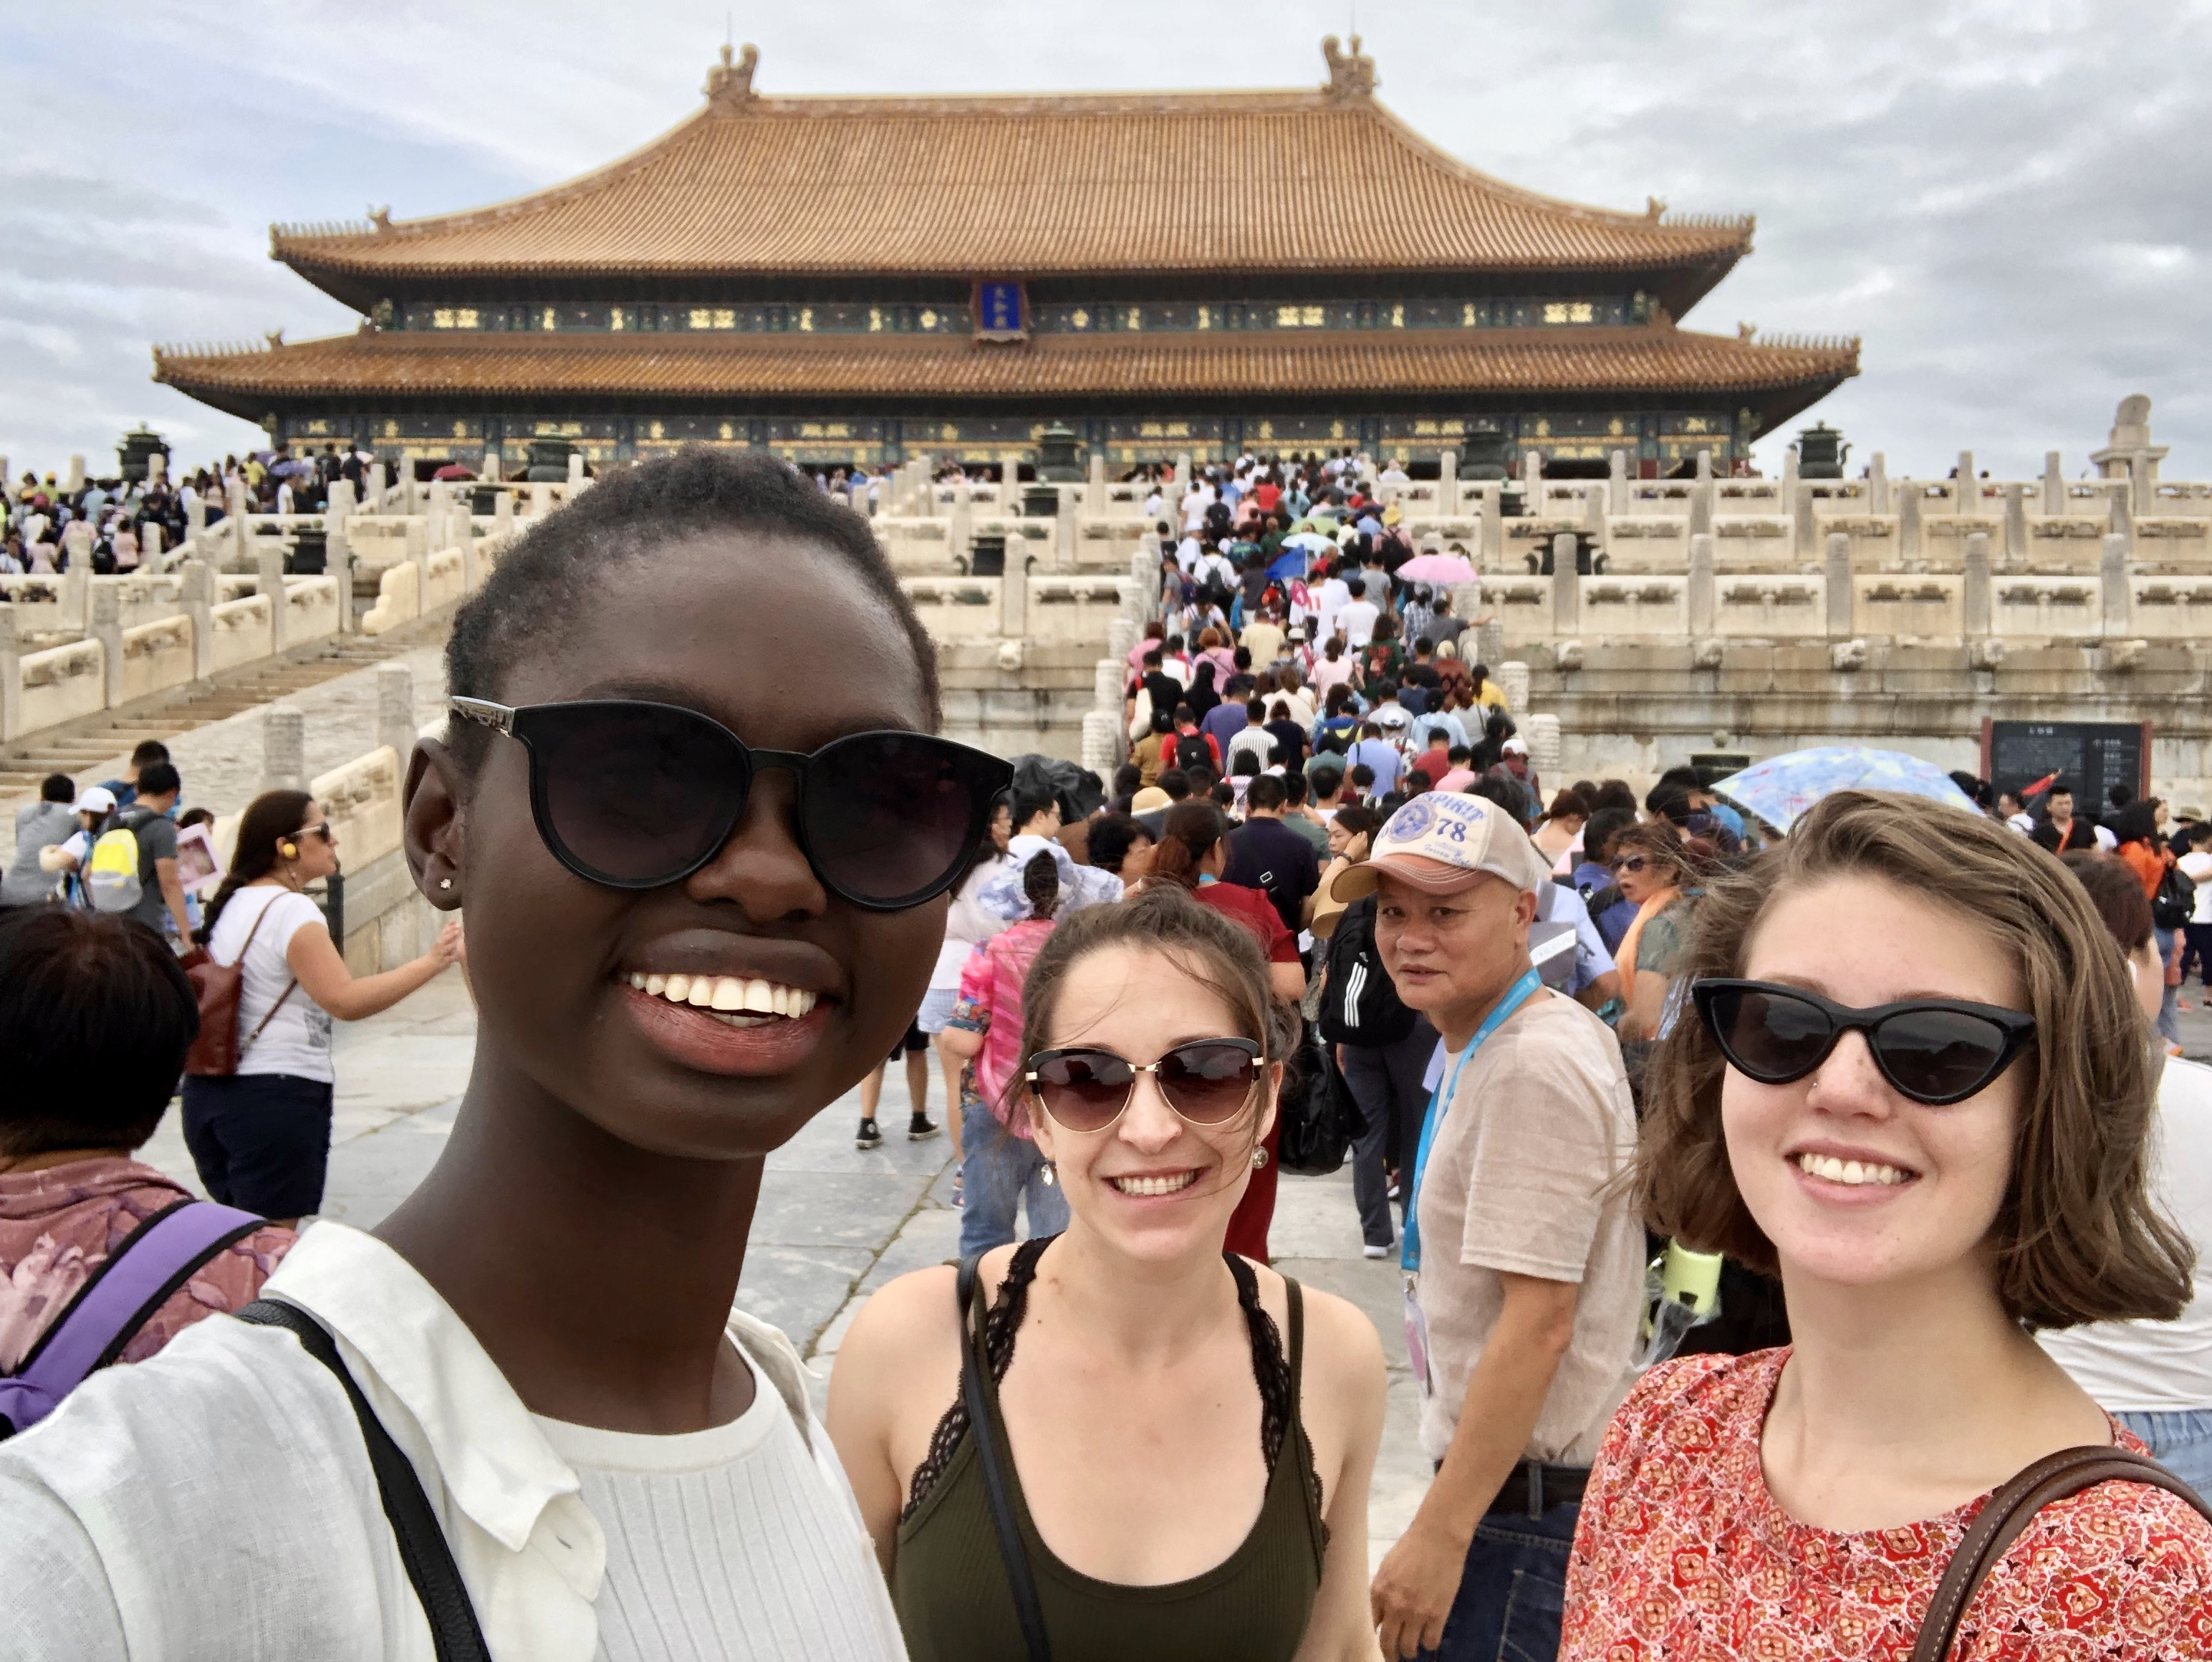 Lauren, CAPA Vlogger for Shanghai, Sadie and I pose for a Selfie as we walk around inside the Forbidden City